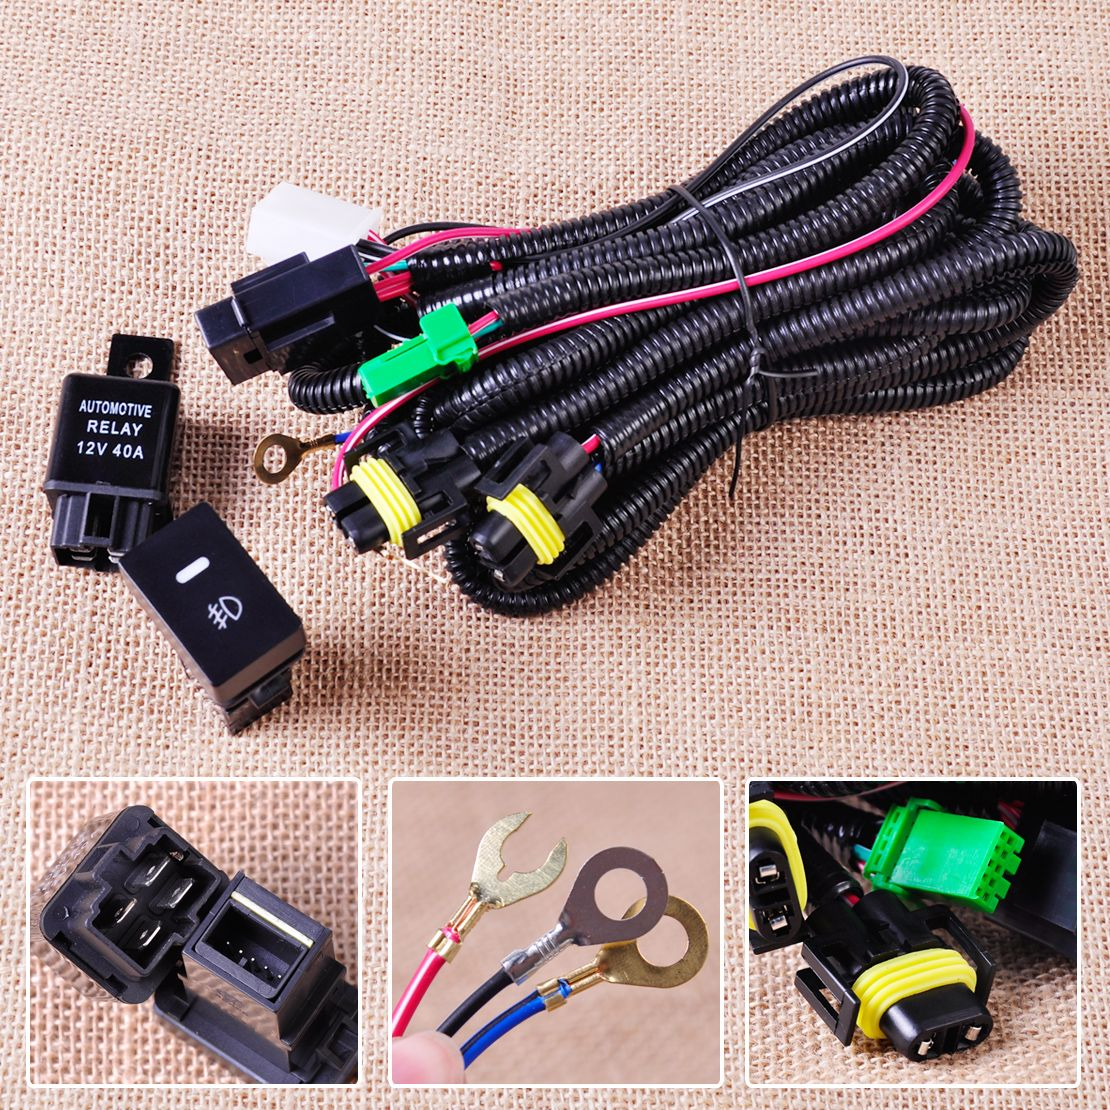 Citall H11 Wiring Harness Sockets Freedom Of Information Officer Wire Components Compare Discount Fog Light Lamp B4540e2ec2a4be27e18cca7cee673907 630152172834599573